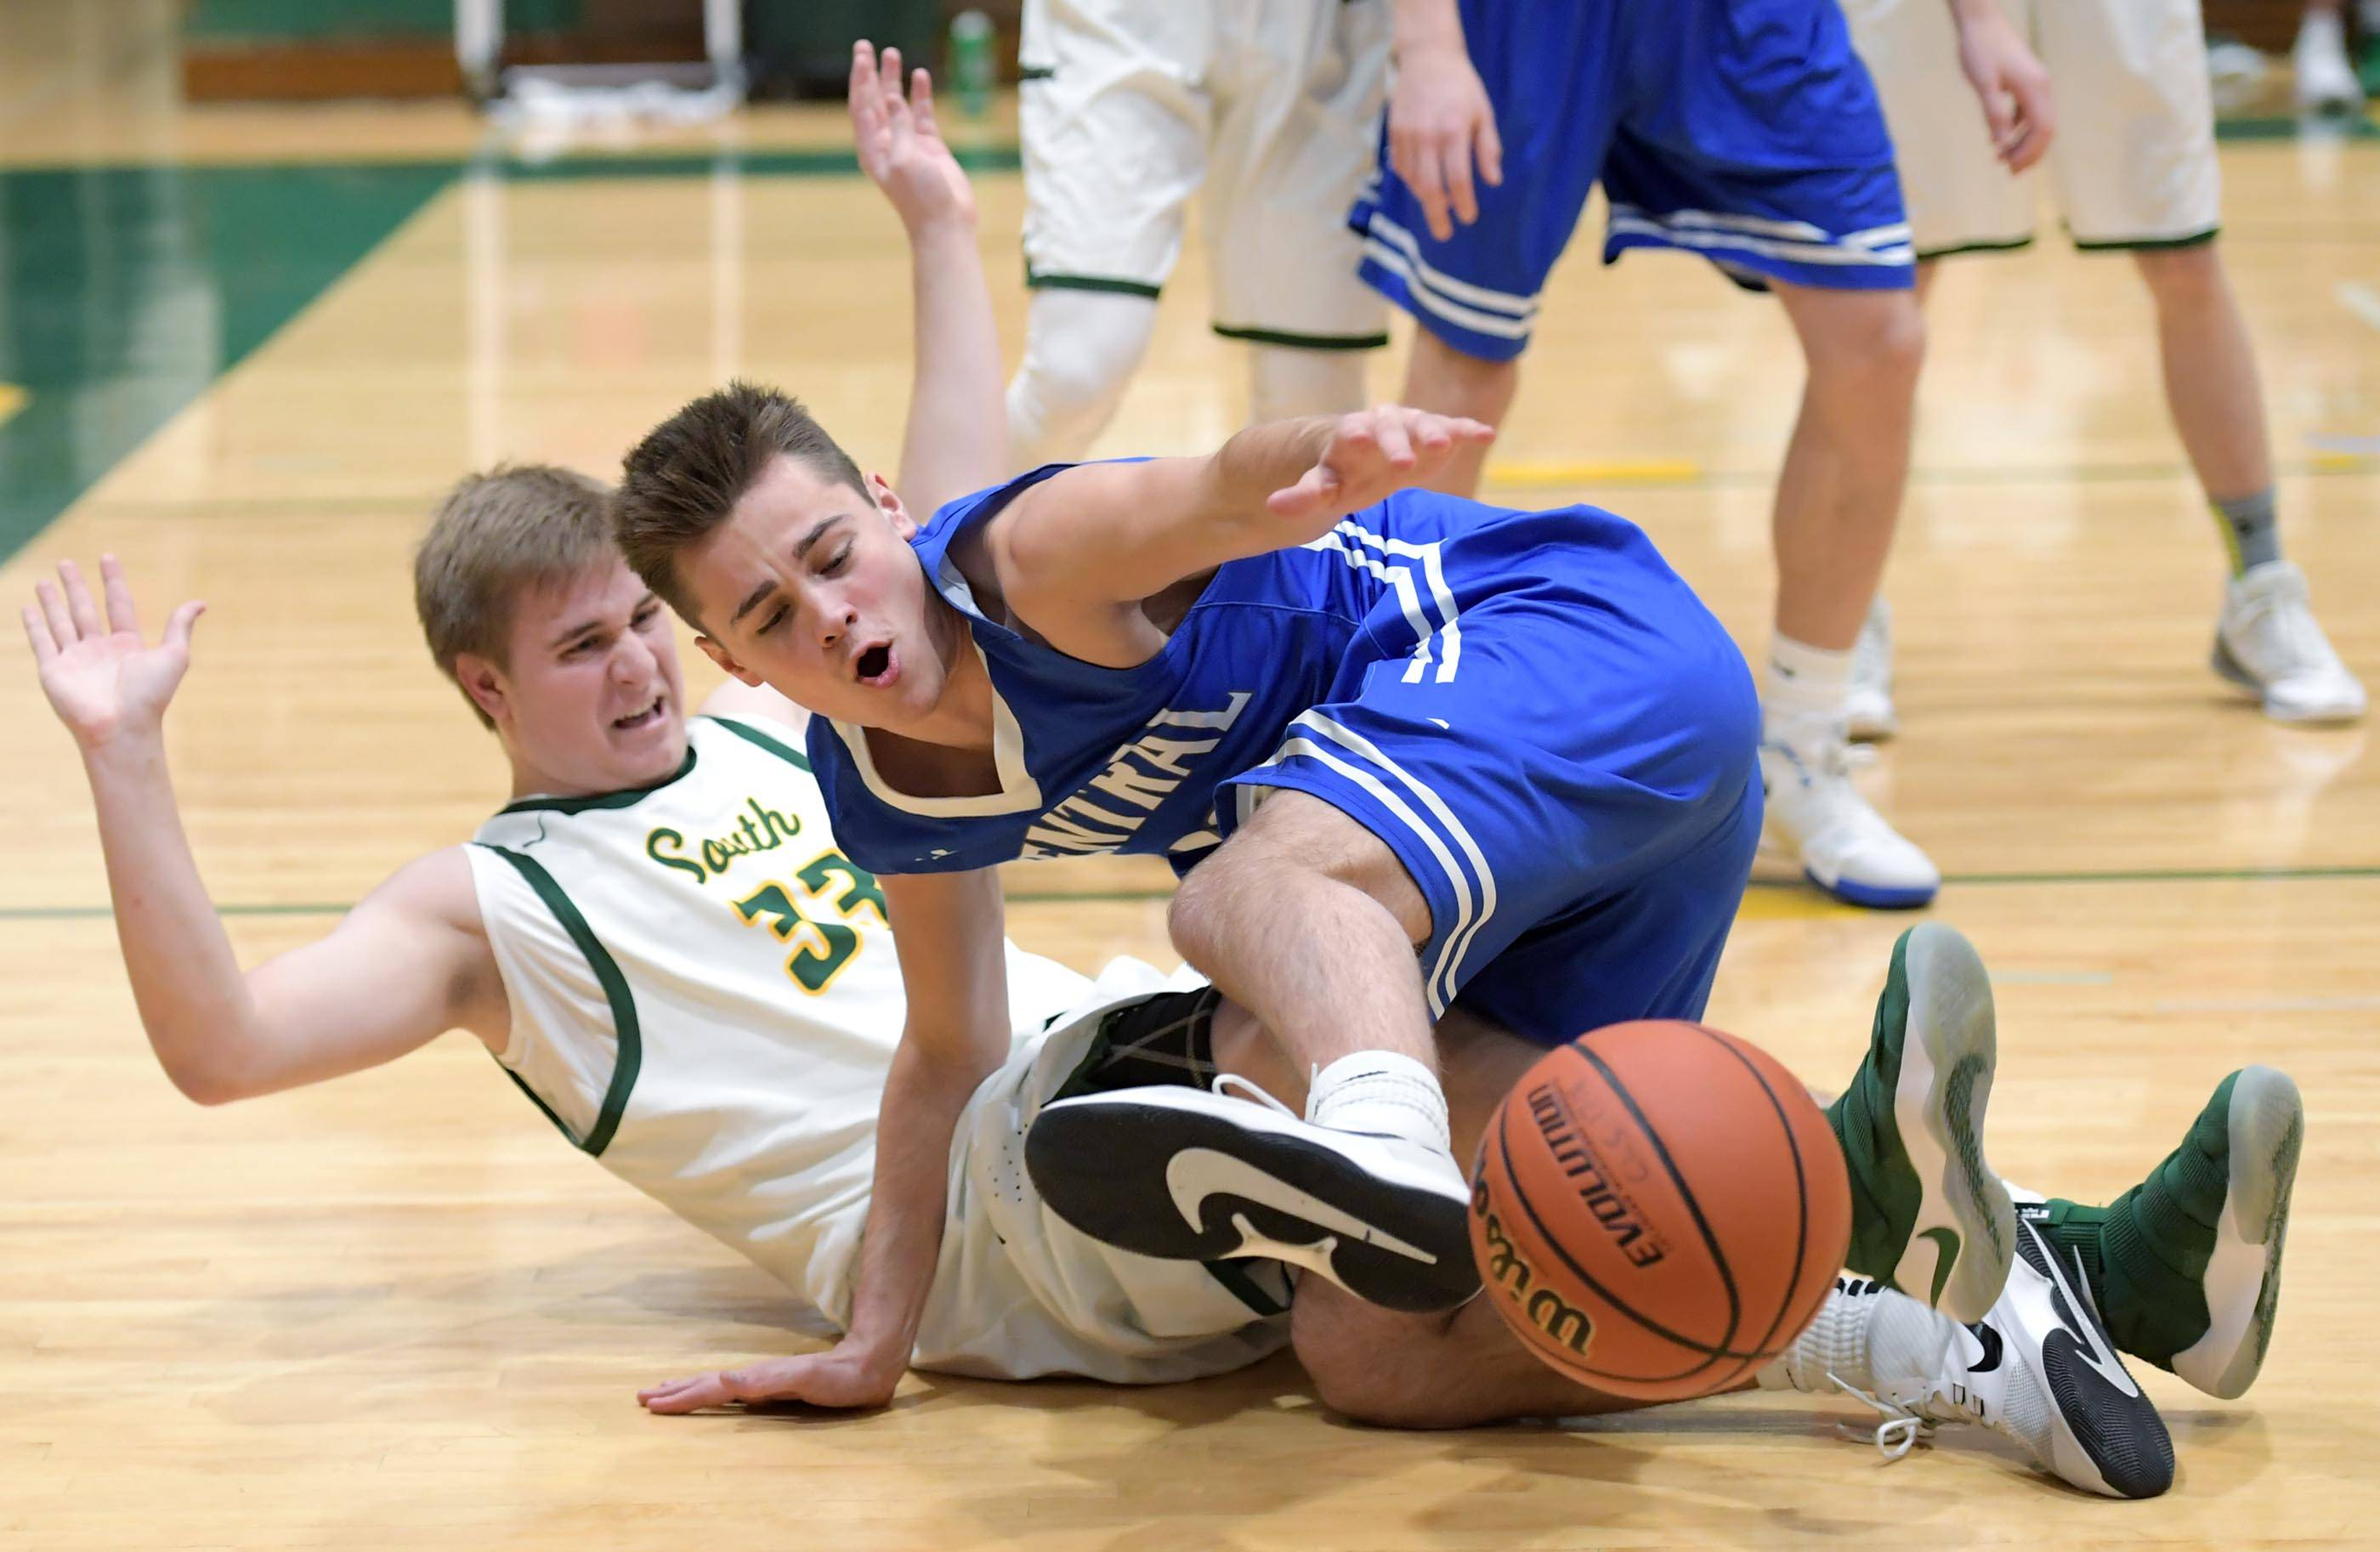 Burlington Central's Logan Andersen loses control of the ball after charging into Crystal Lake South's Tyler Haskin Wednesday in Crystal Lake. Burlington's Dejsani Beamon took control of the ball.